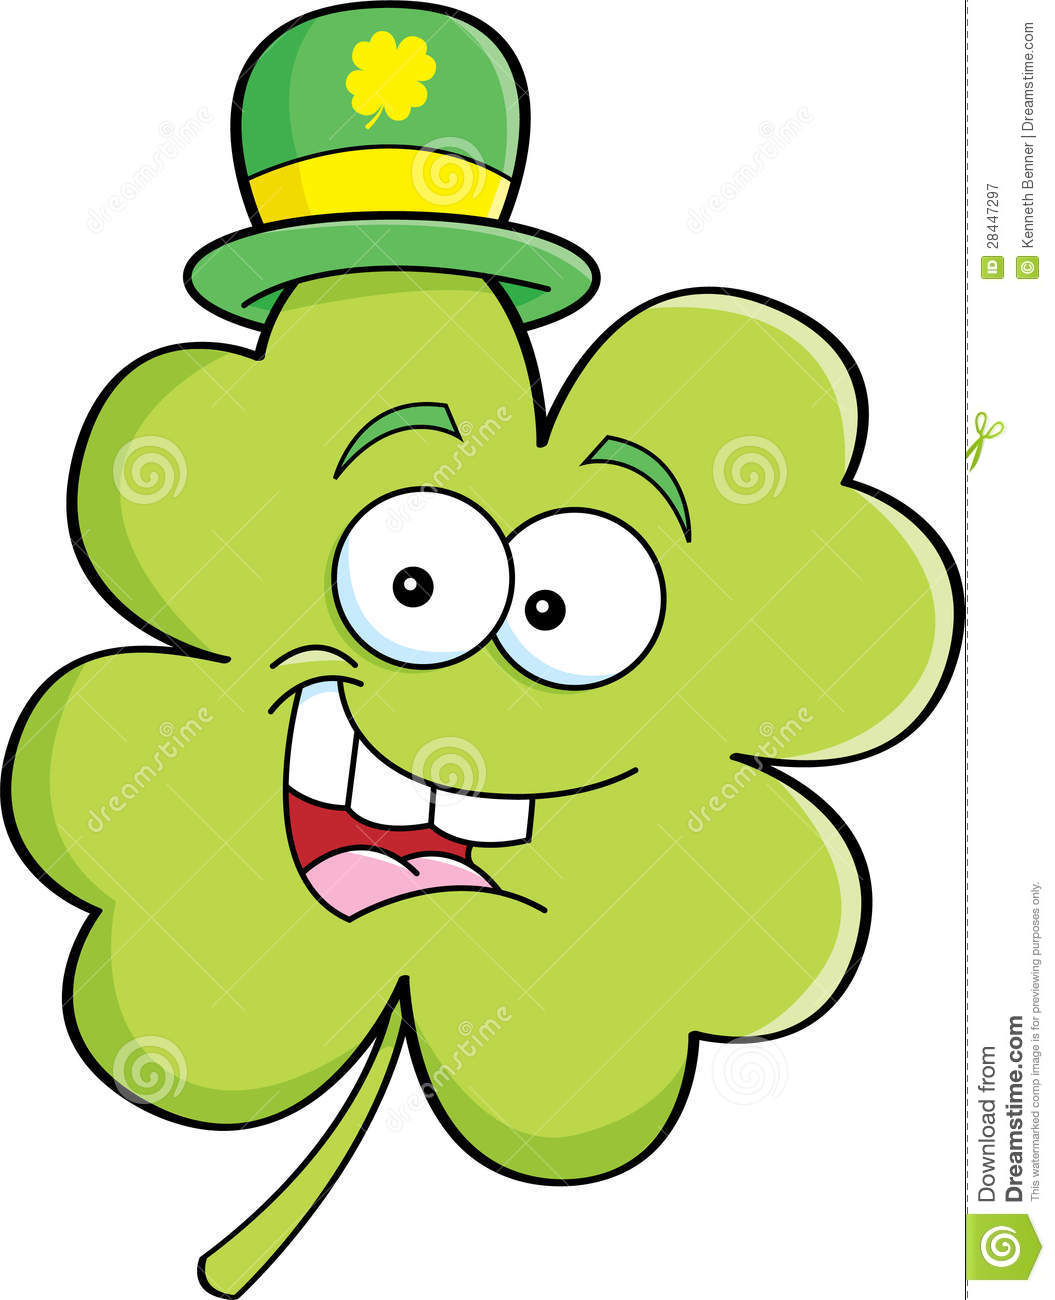 Cartoon shamrock stock vector. Illustration of irish ...